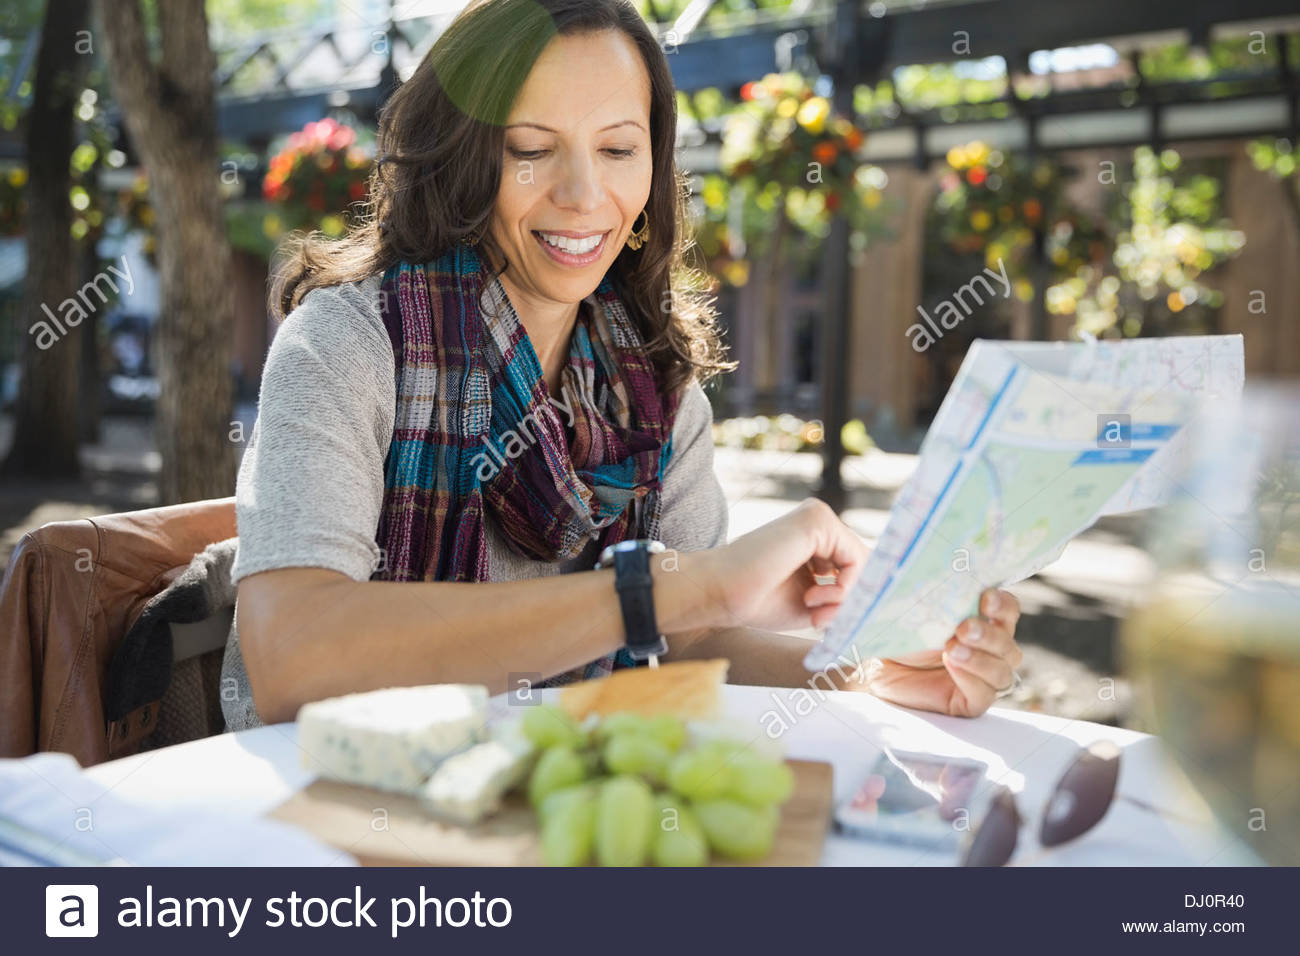 Woman with map checking time at outdoor cafe - Stock Image